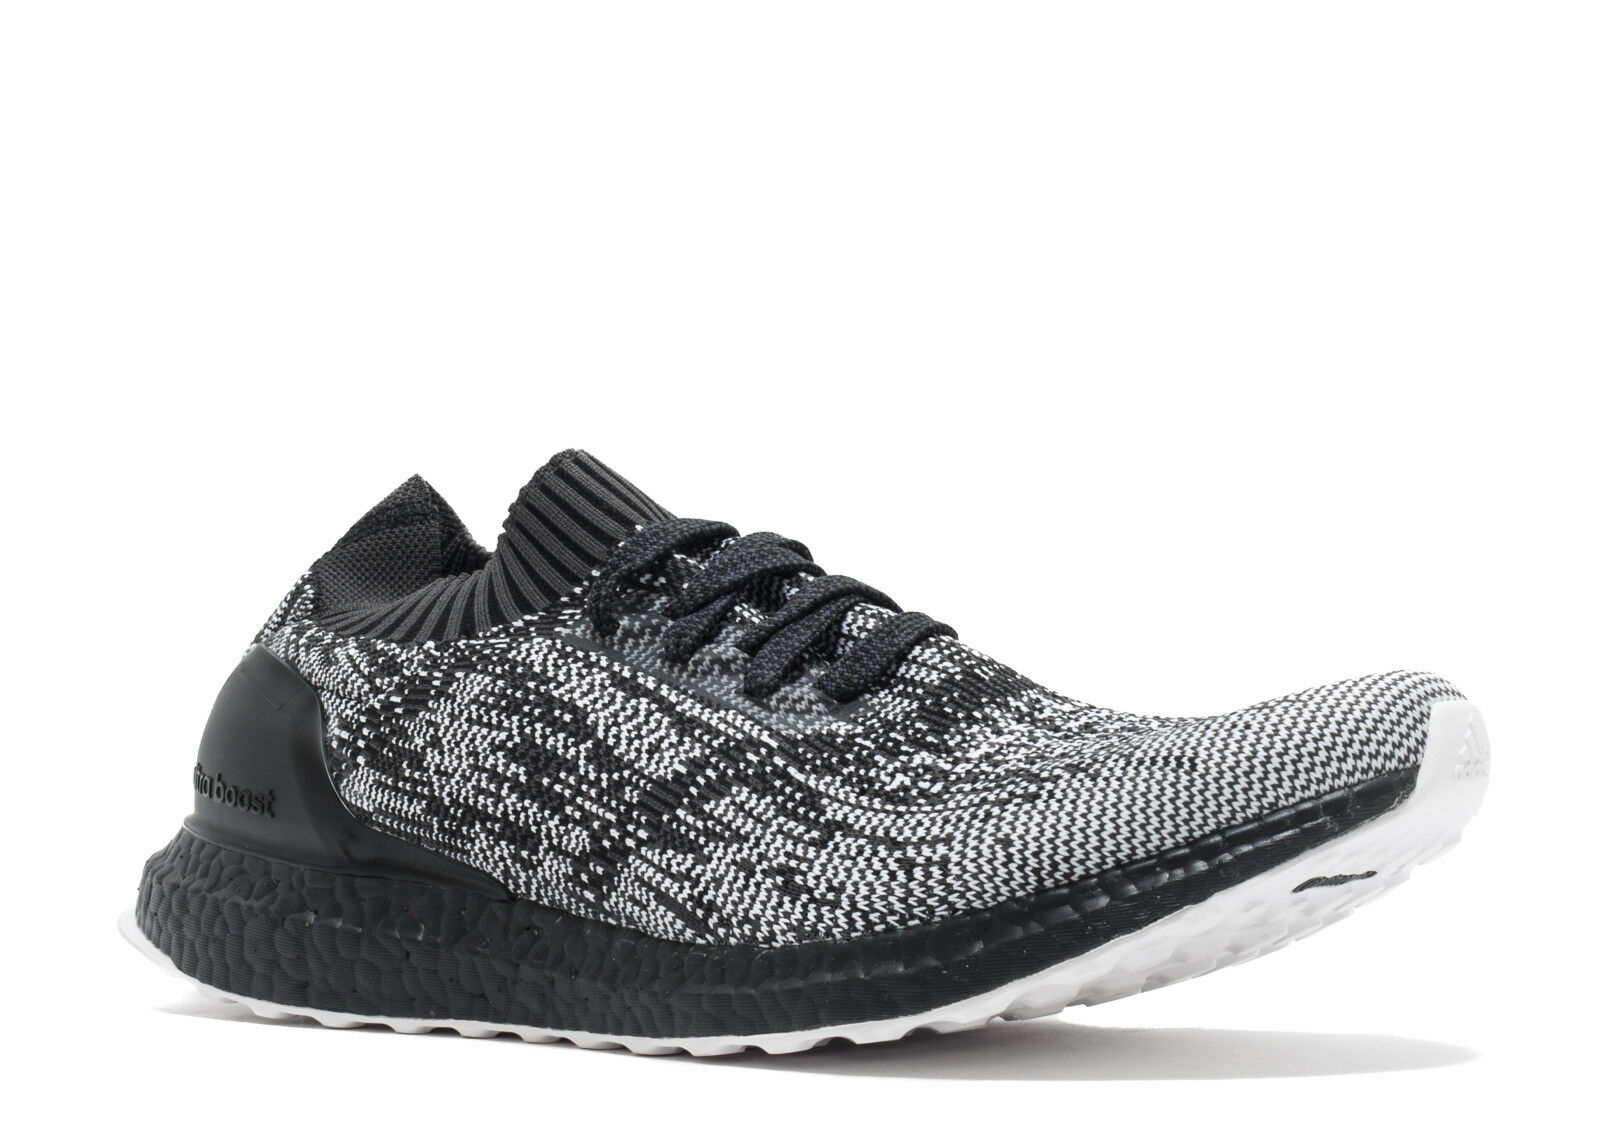 Ultra Boost Uncaged - S80698 - Size 8.5